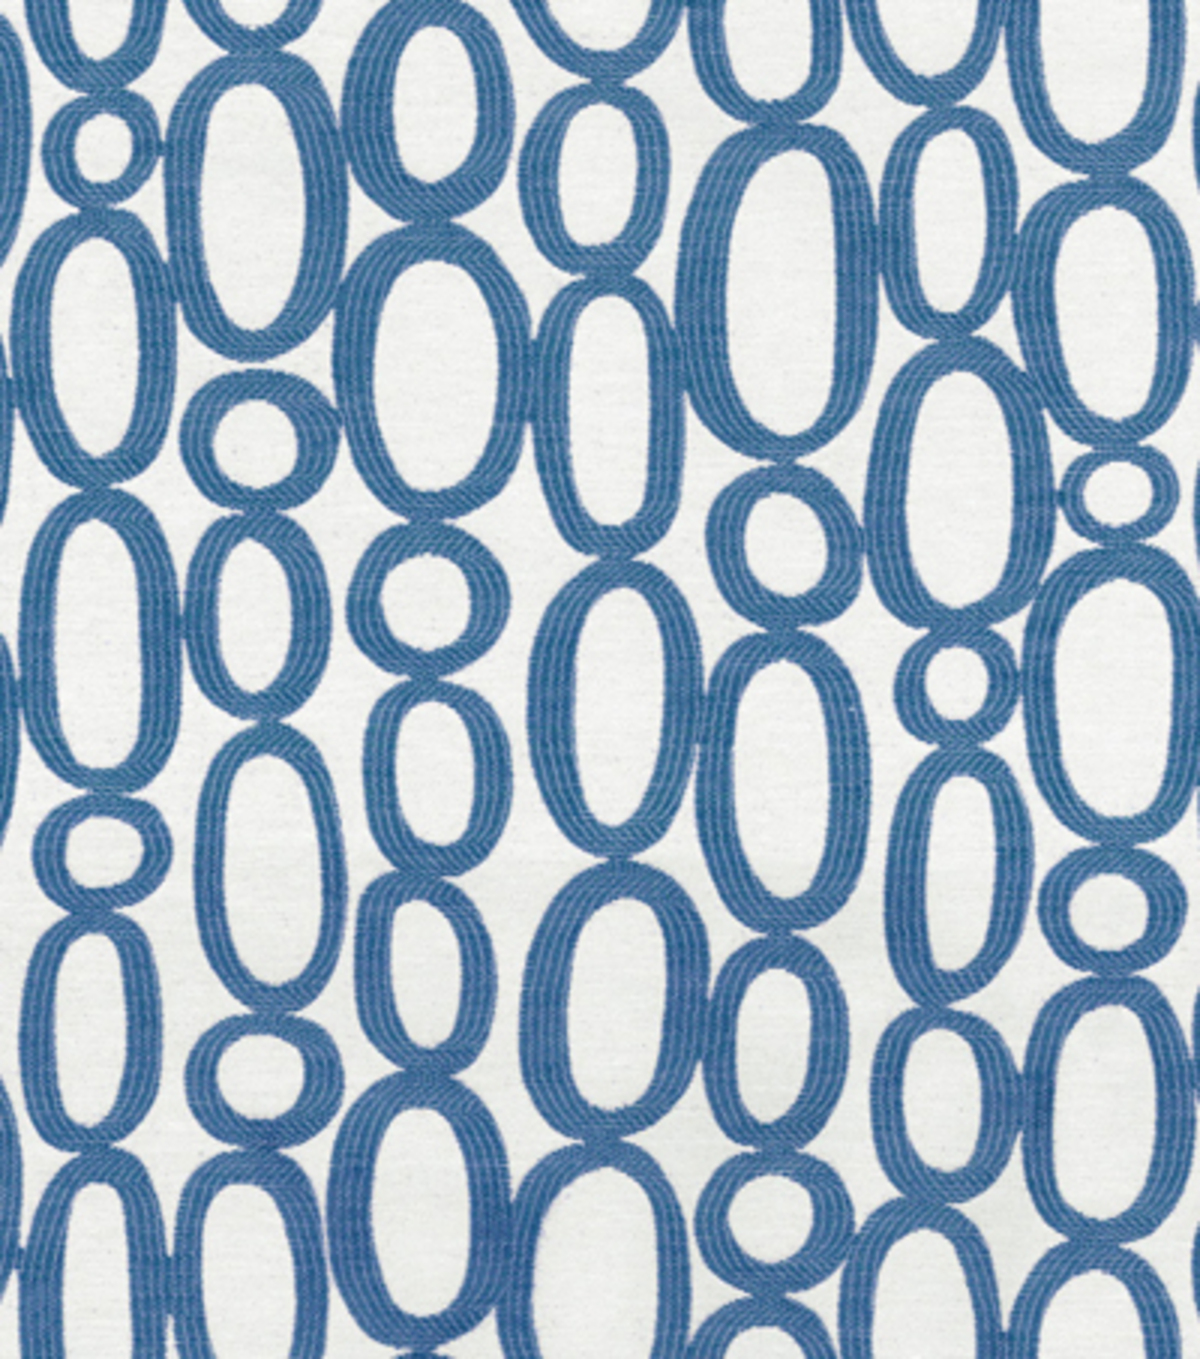 Home Decor 8\u0022x8\u0022 Fabric Swatch-HGTV HOME Looped Azure